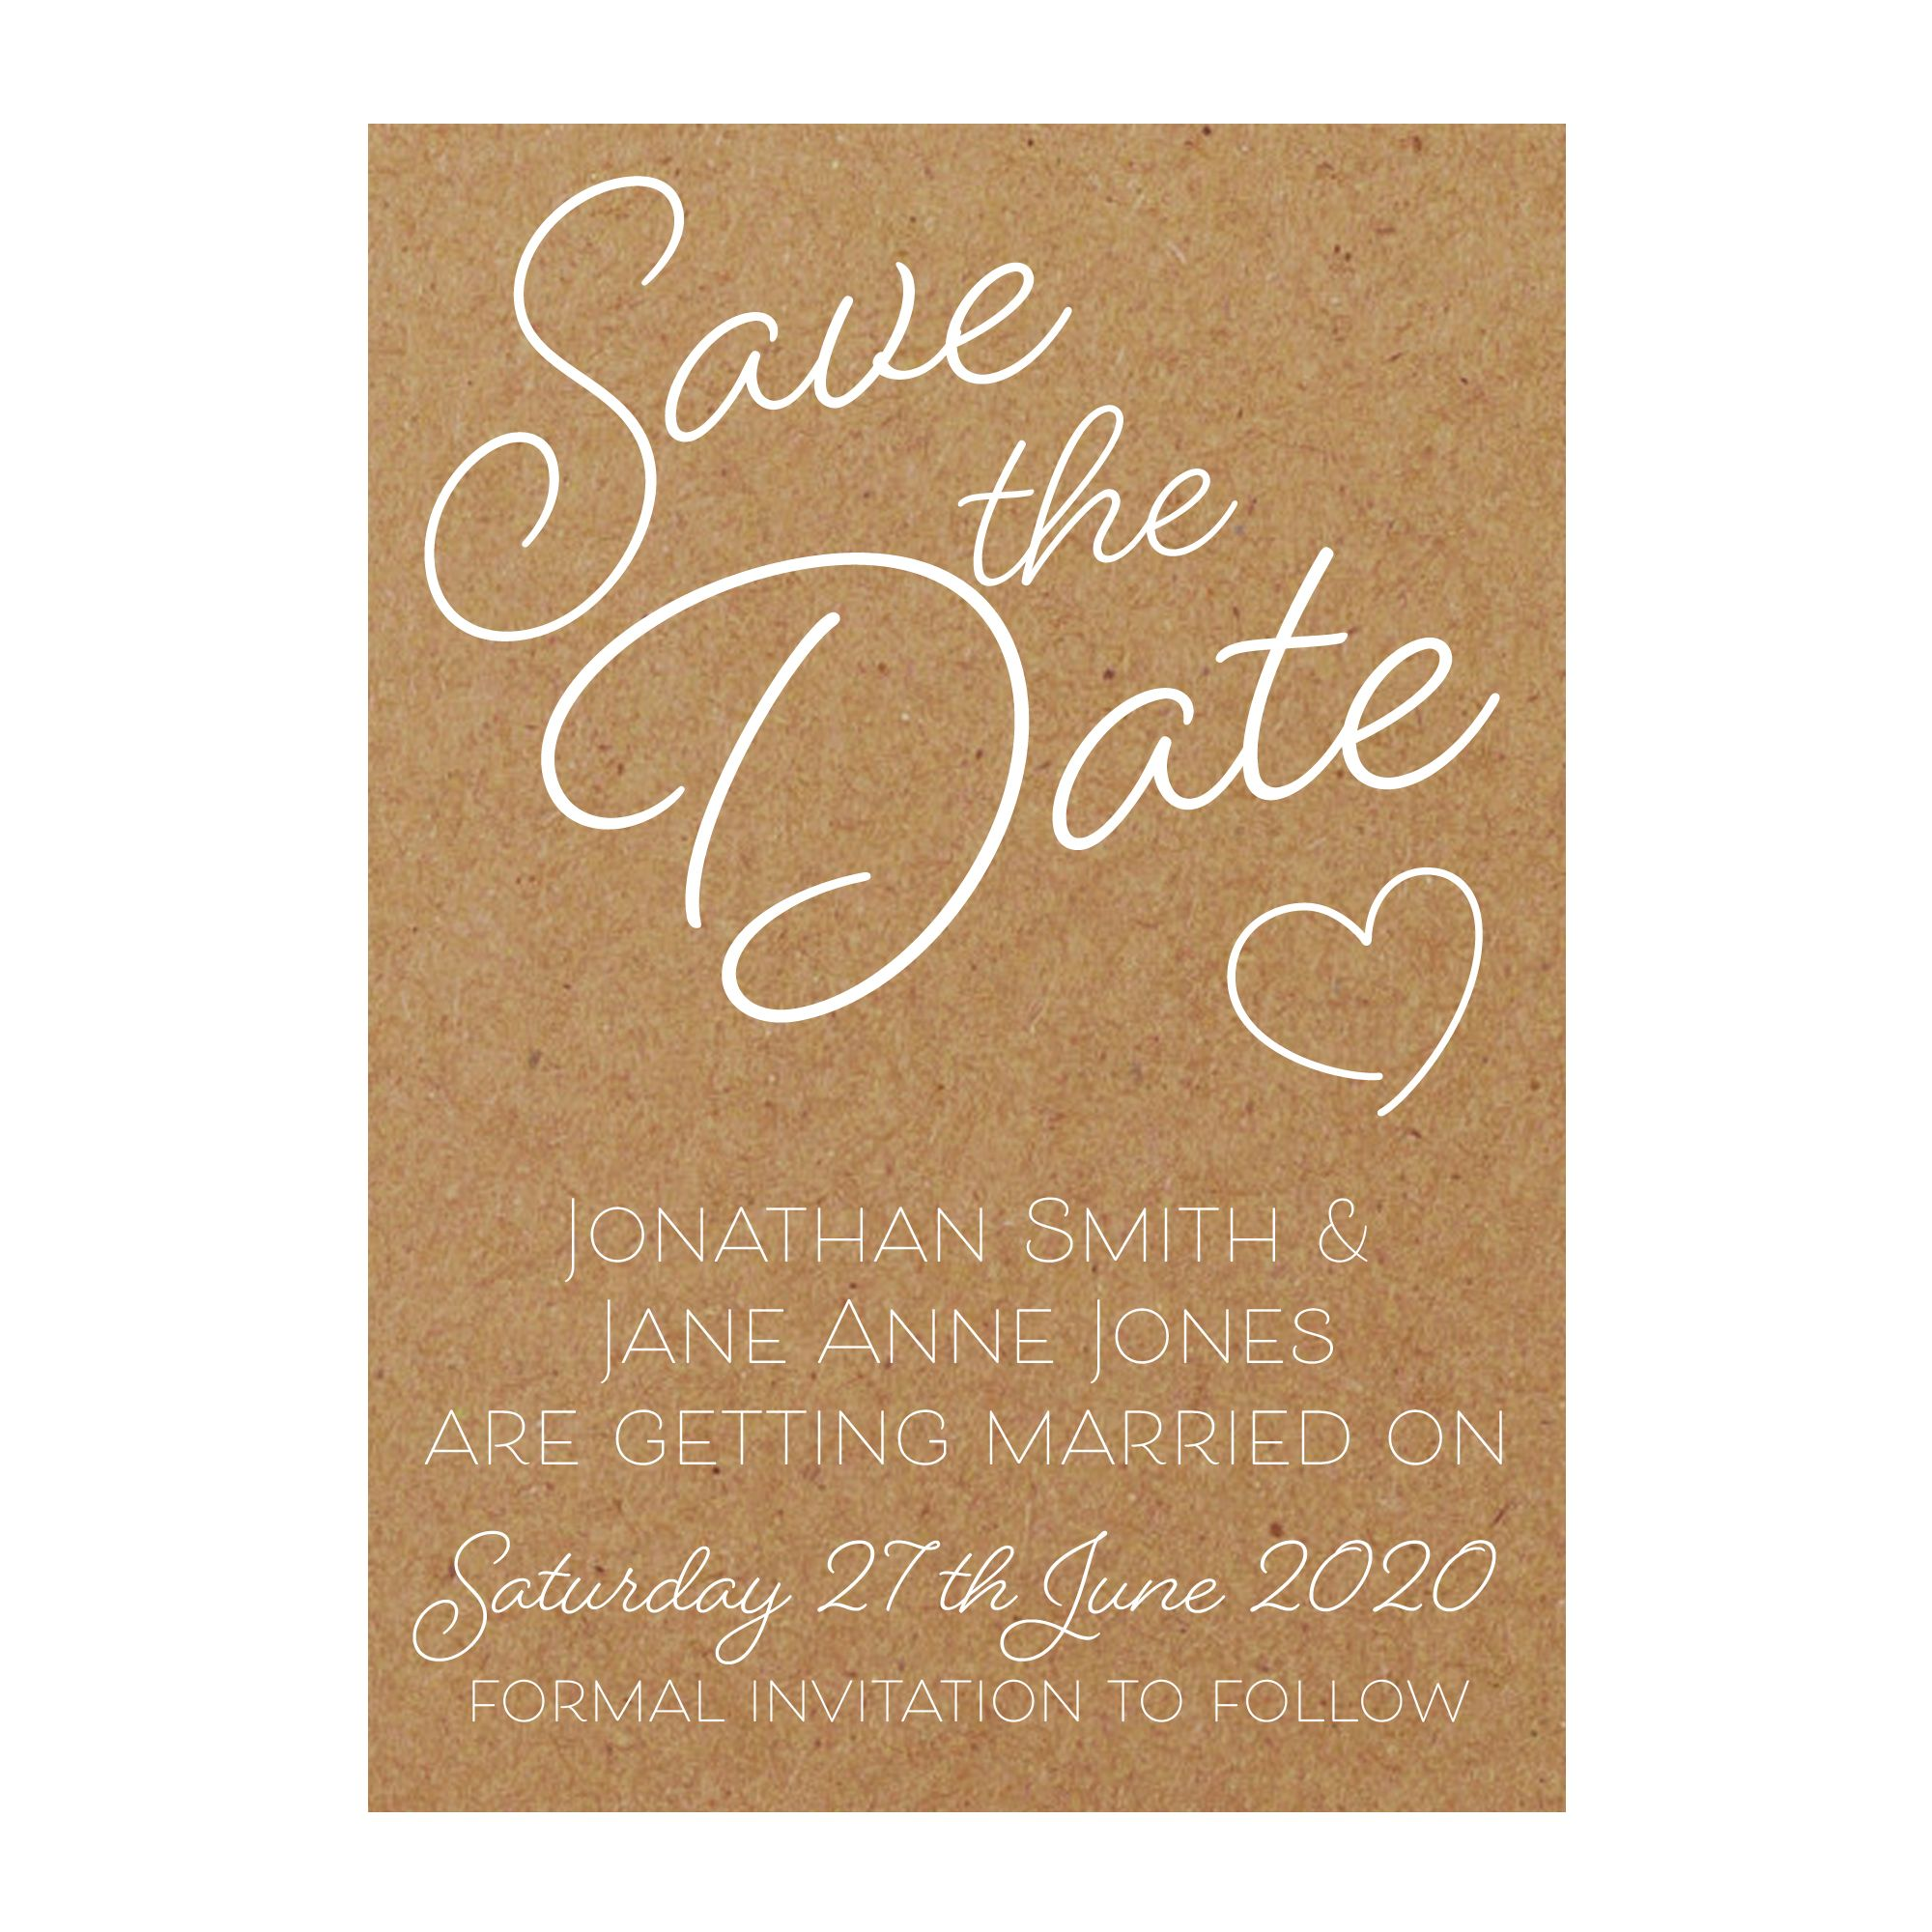 Recycled Brown Kraft with White Ink Cute Heart Save the Date Cards